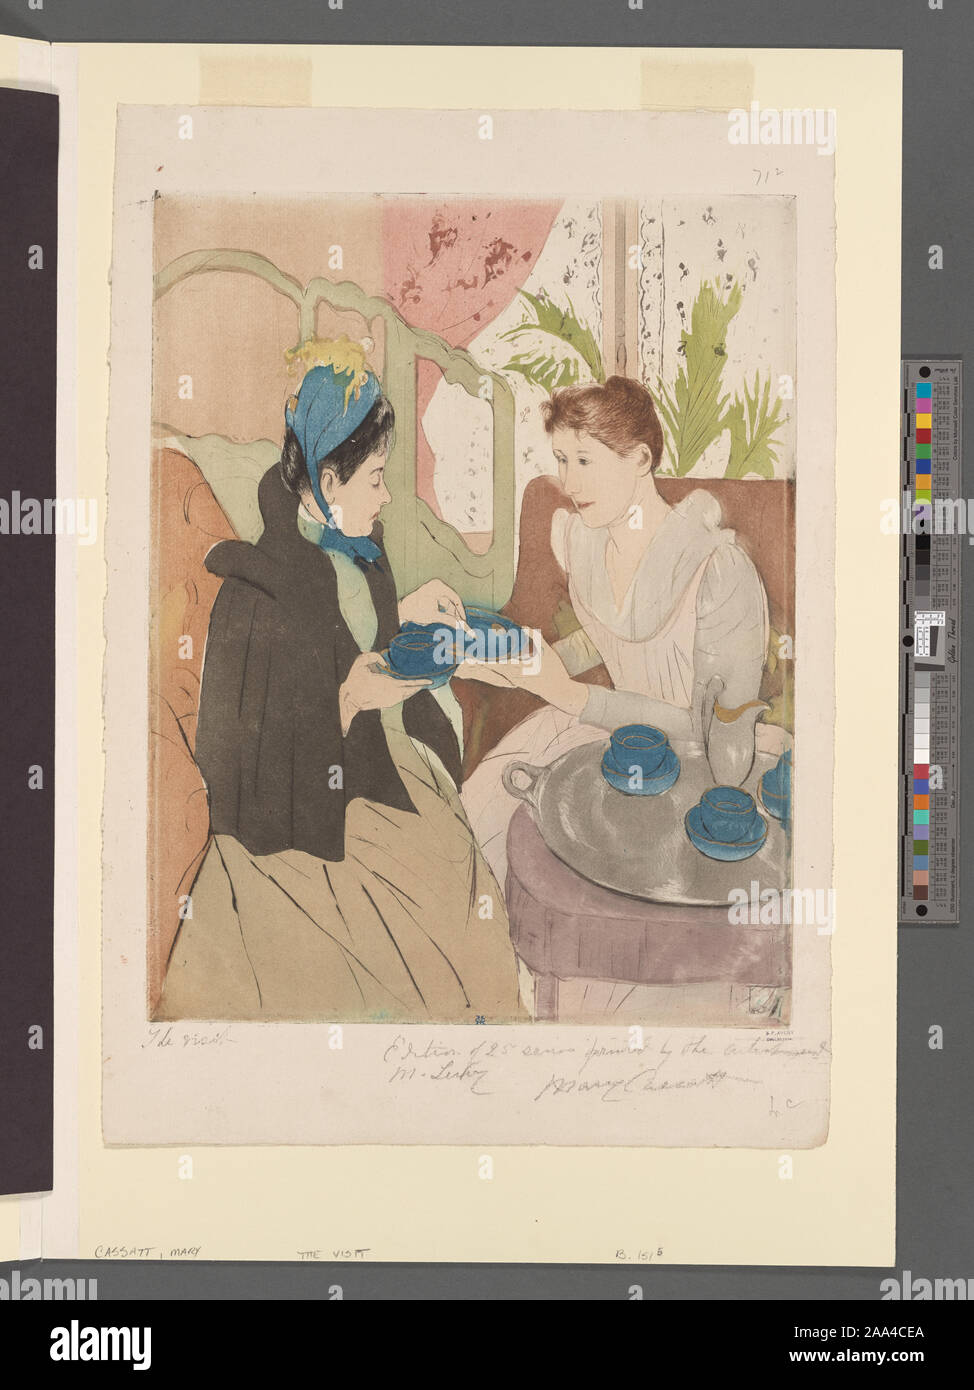 Marks in plate, l.c.: MC. Inscription in pencil, l.l.: The visit; in pencil, l.r.: Edition of 25 series printed by the artist and M. Leroy. Citation/Reference: Breeskin 151 iii/iii; Mathews/Shapiro 13 v/v Signed in pencil, l.r.: Mary Cassatt. Accession no. 108314; Afternoon tea party. Stock Photo